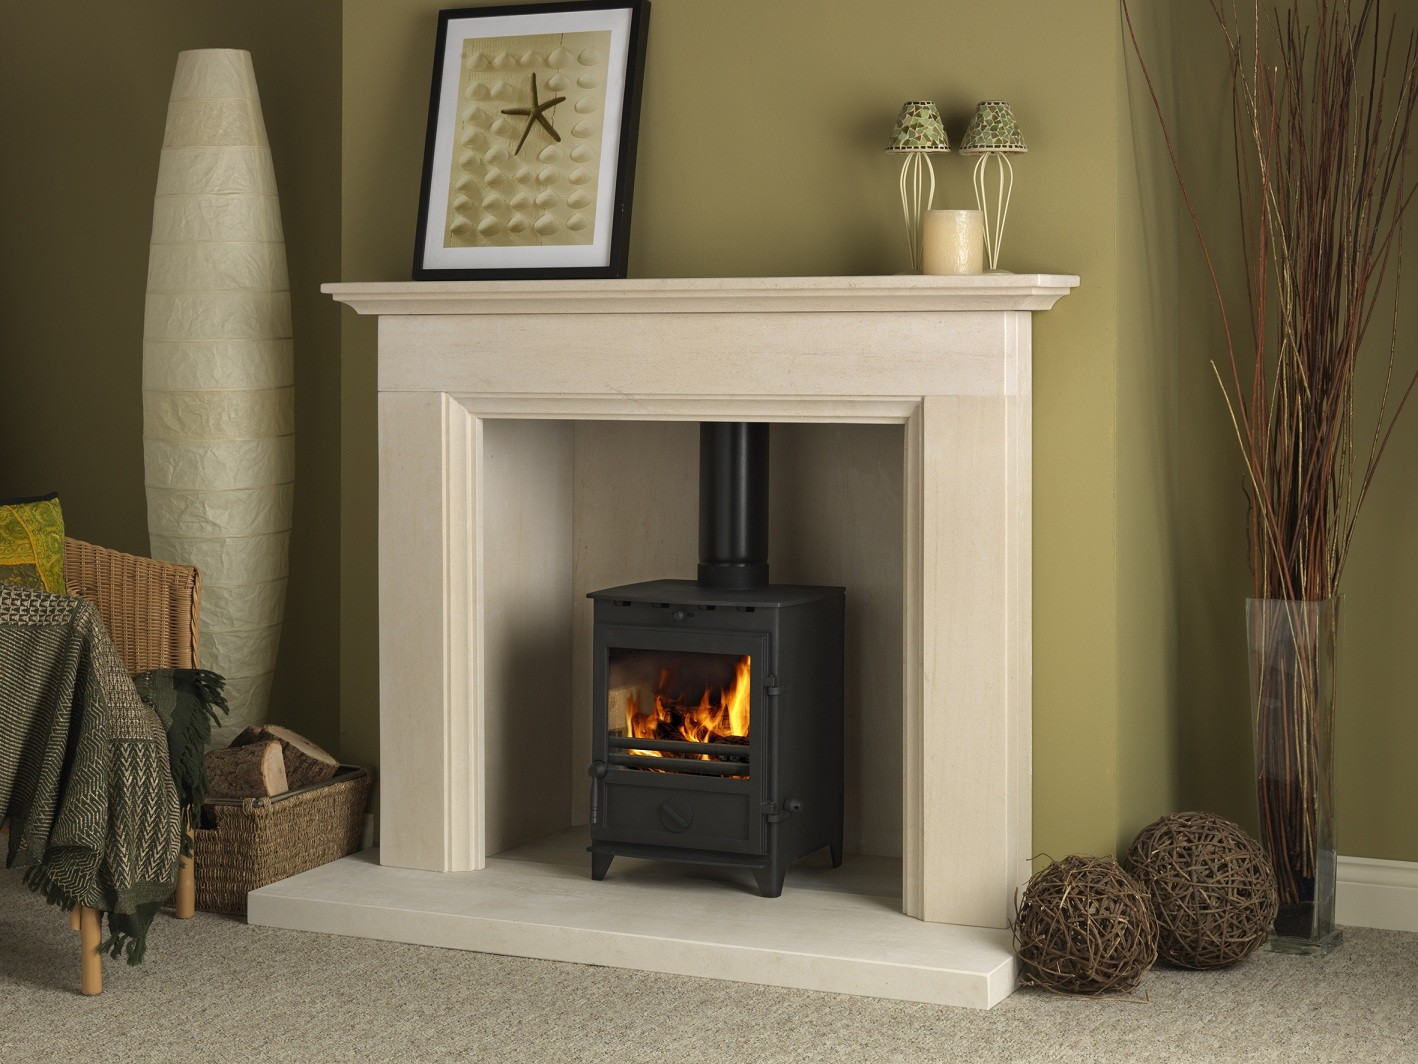 Fireline FP5 Stove Reviews Uk